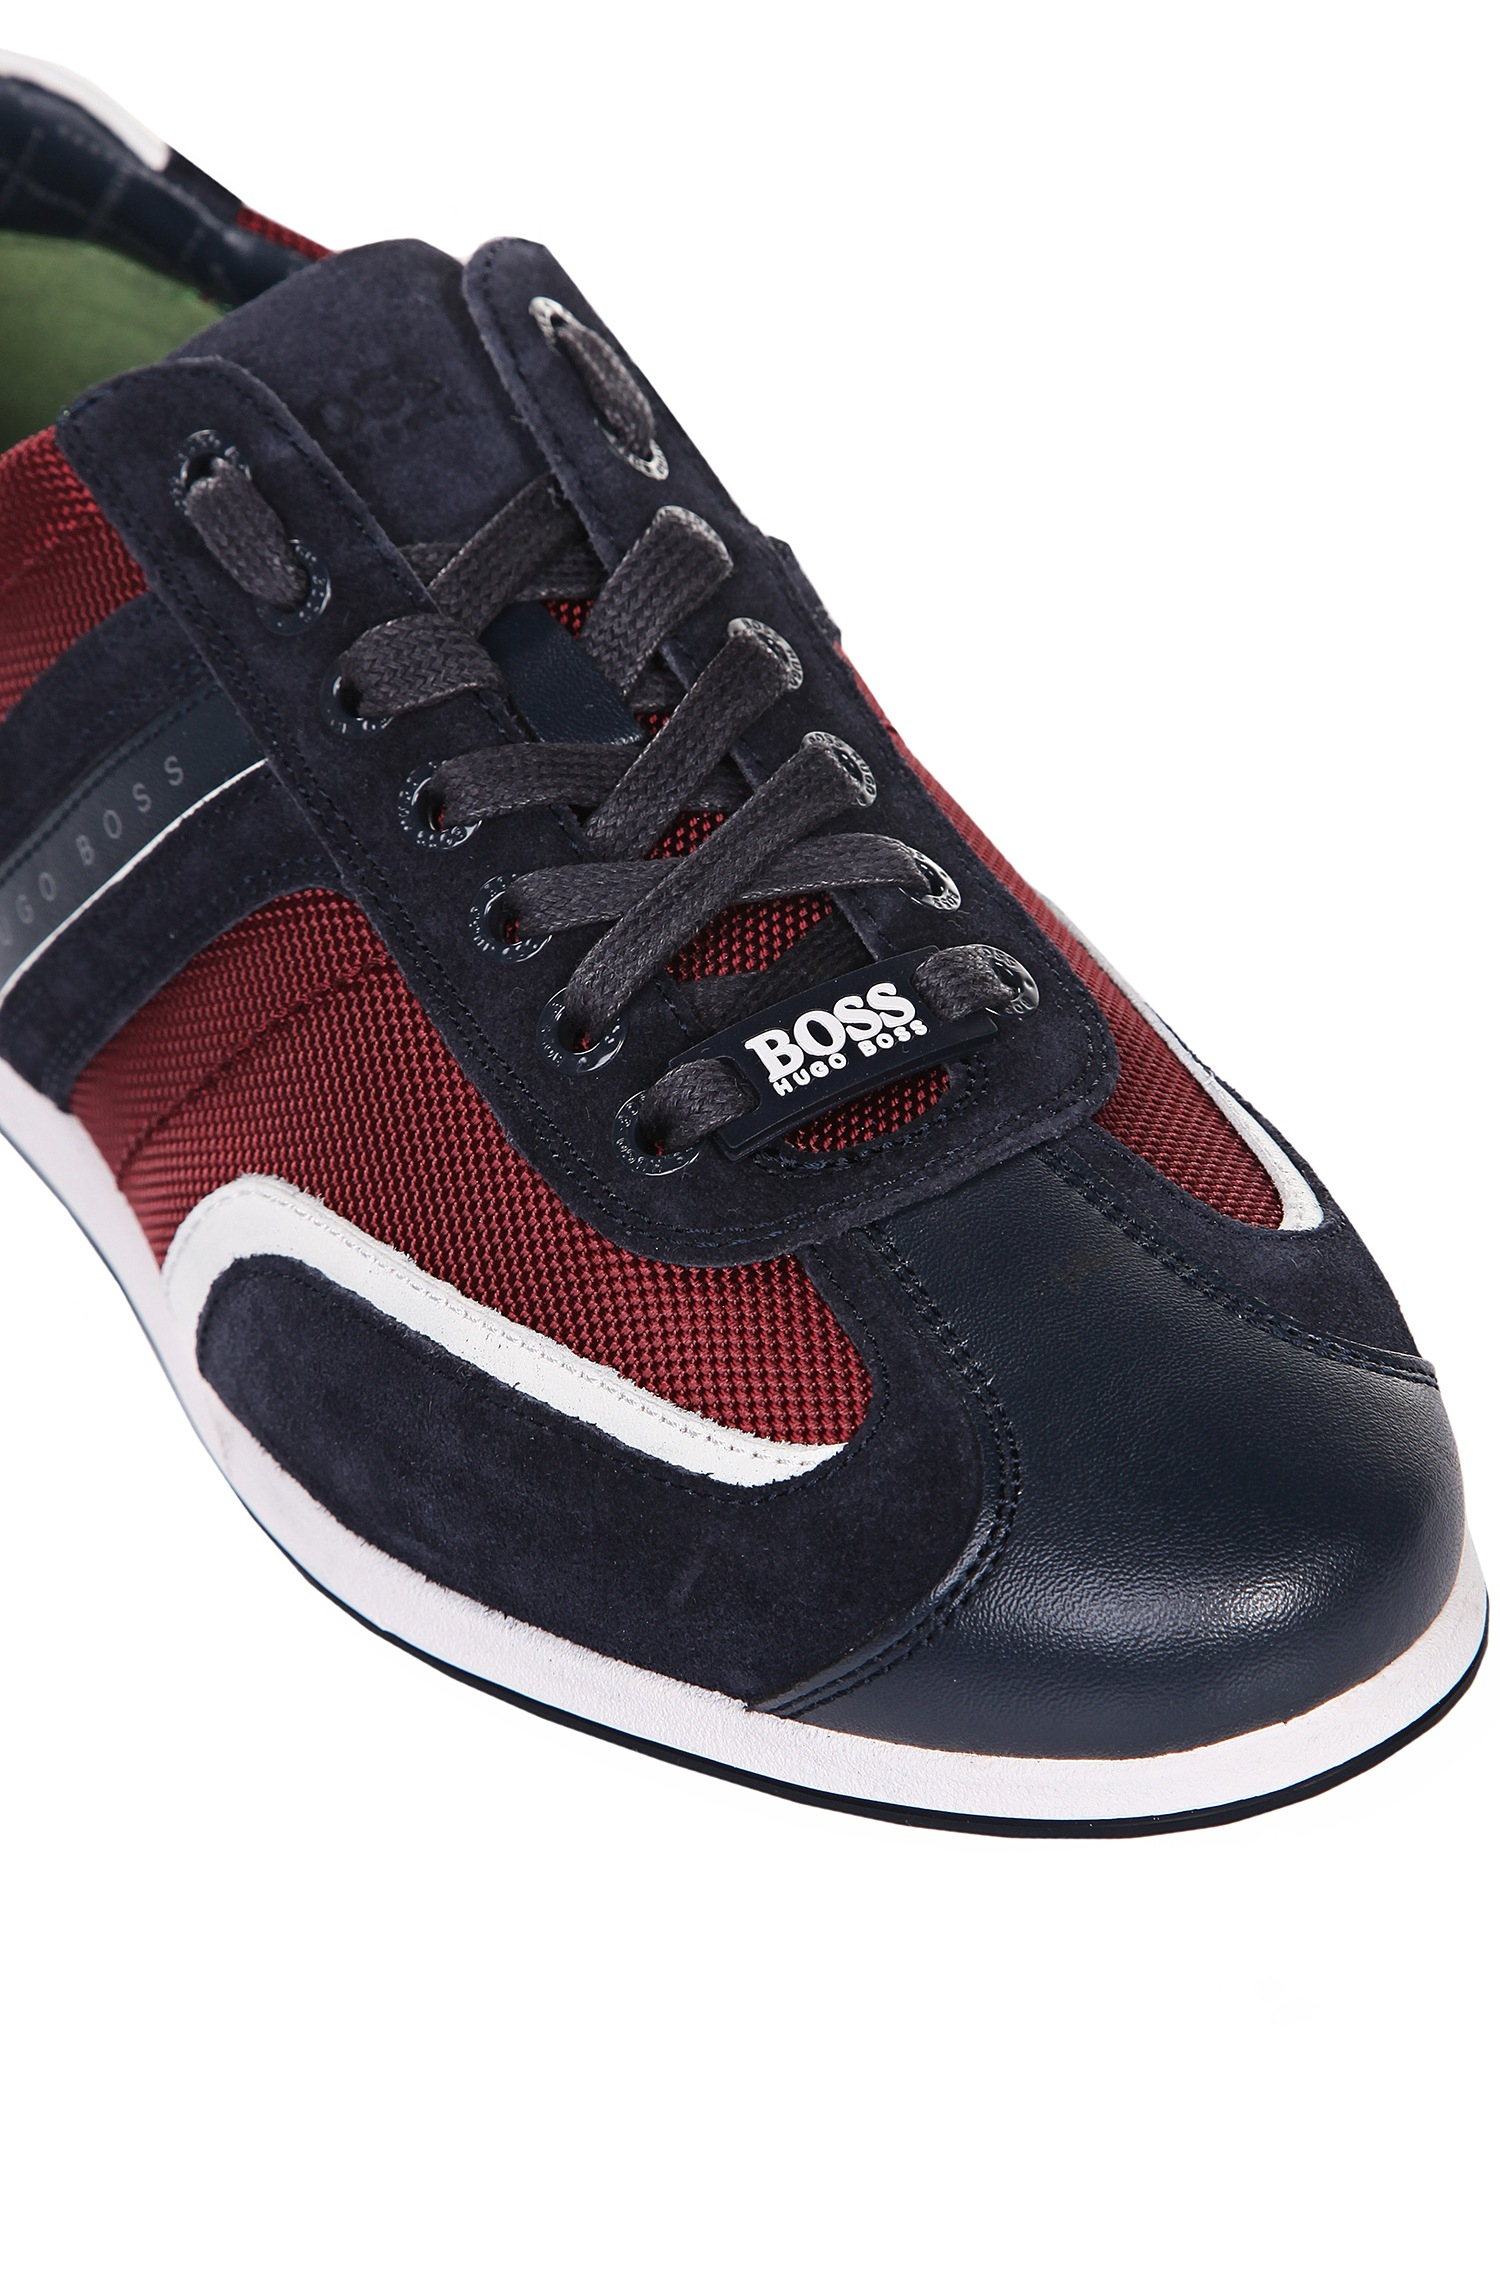 lyst boss green 39 stiven 39 suede trim sneakers in red for men. Black Bedroom Furniture Sets. Home Design Ideas